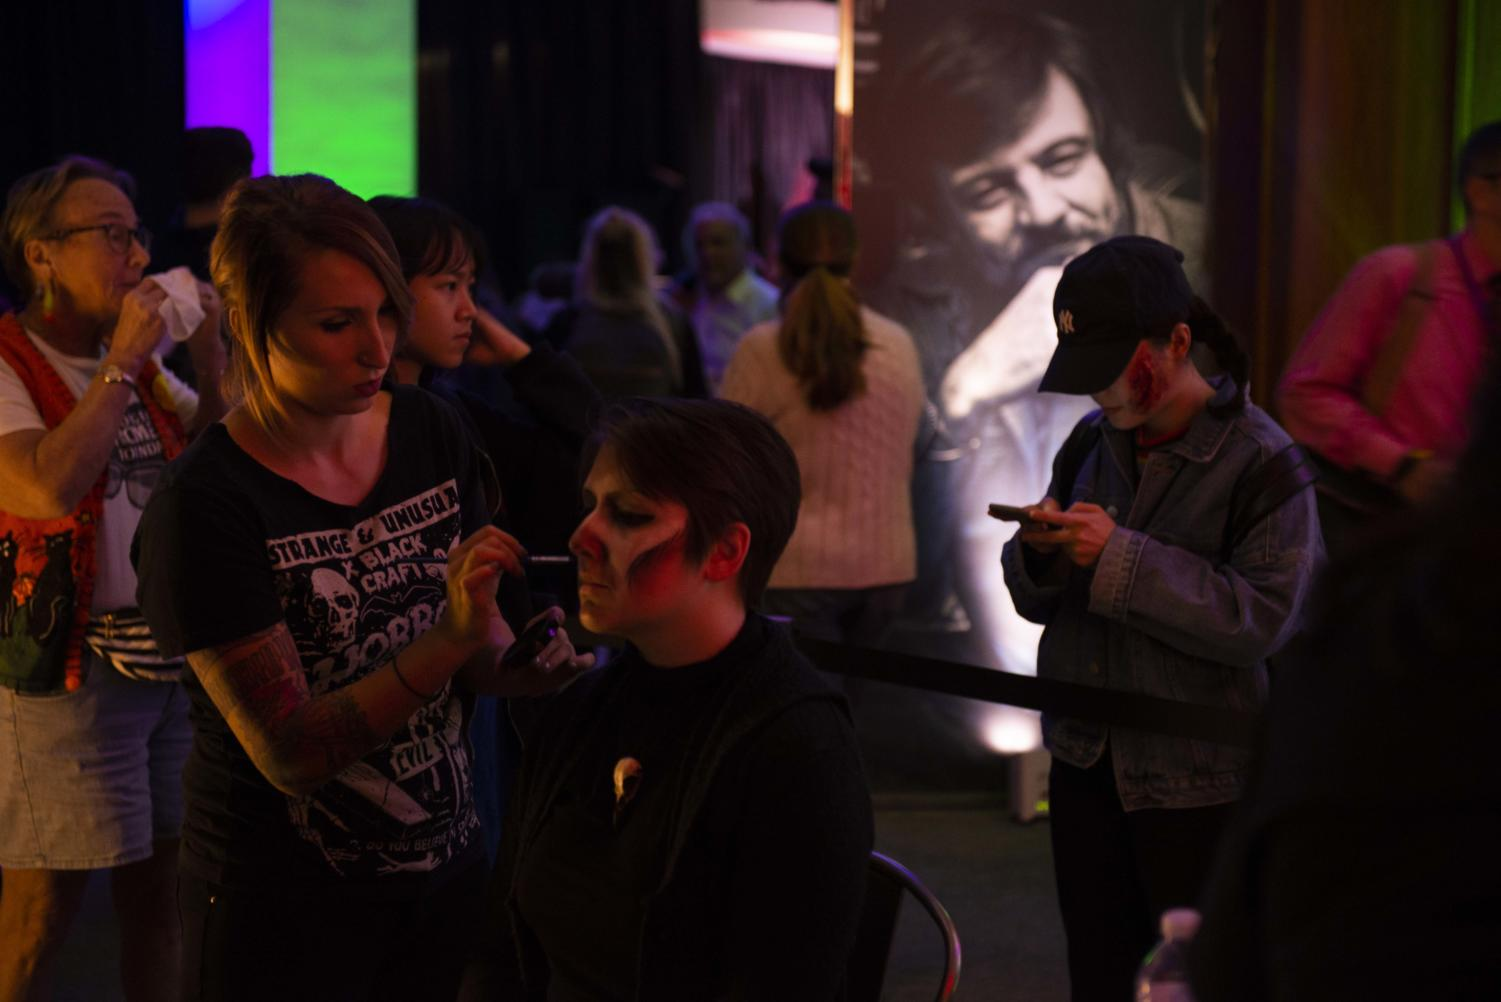 Visitors at Living with the Dead: A Party Celebrating the George A. Romero Archival receive makeup courtesy of ScareHouse.